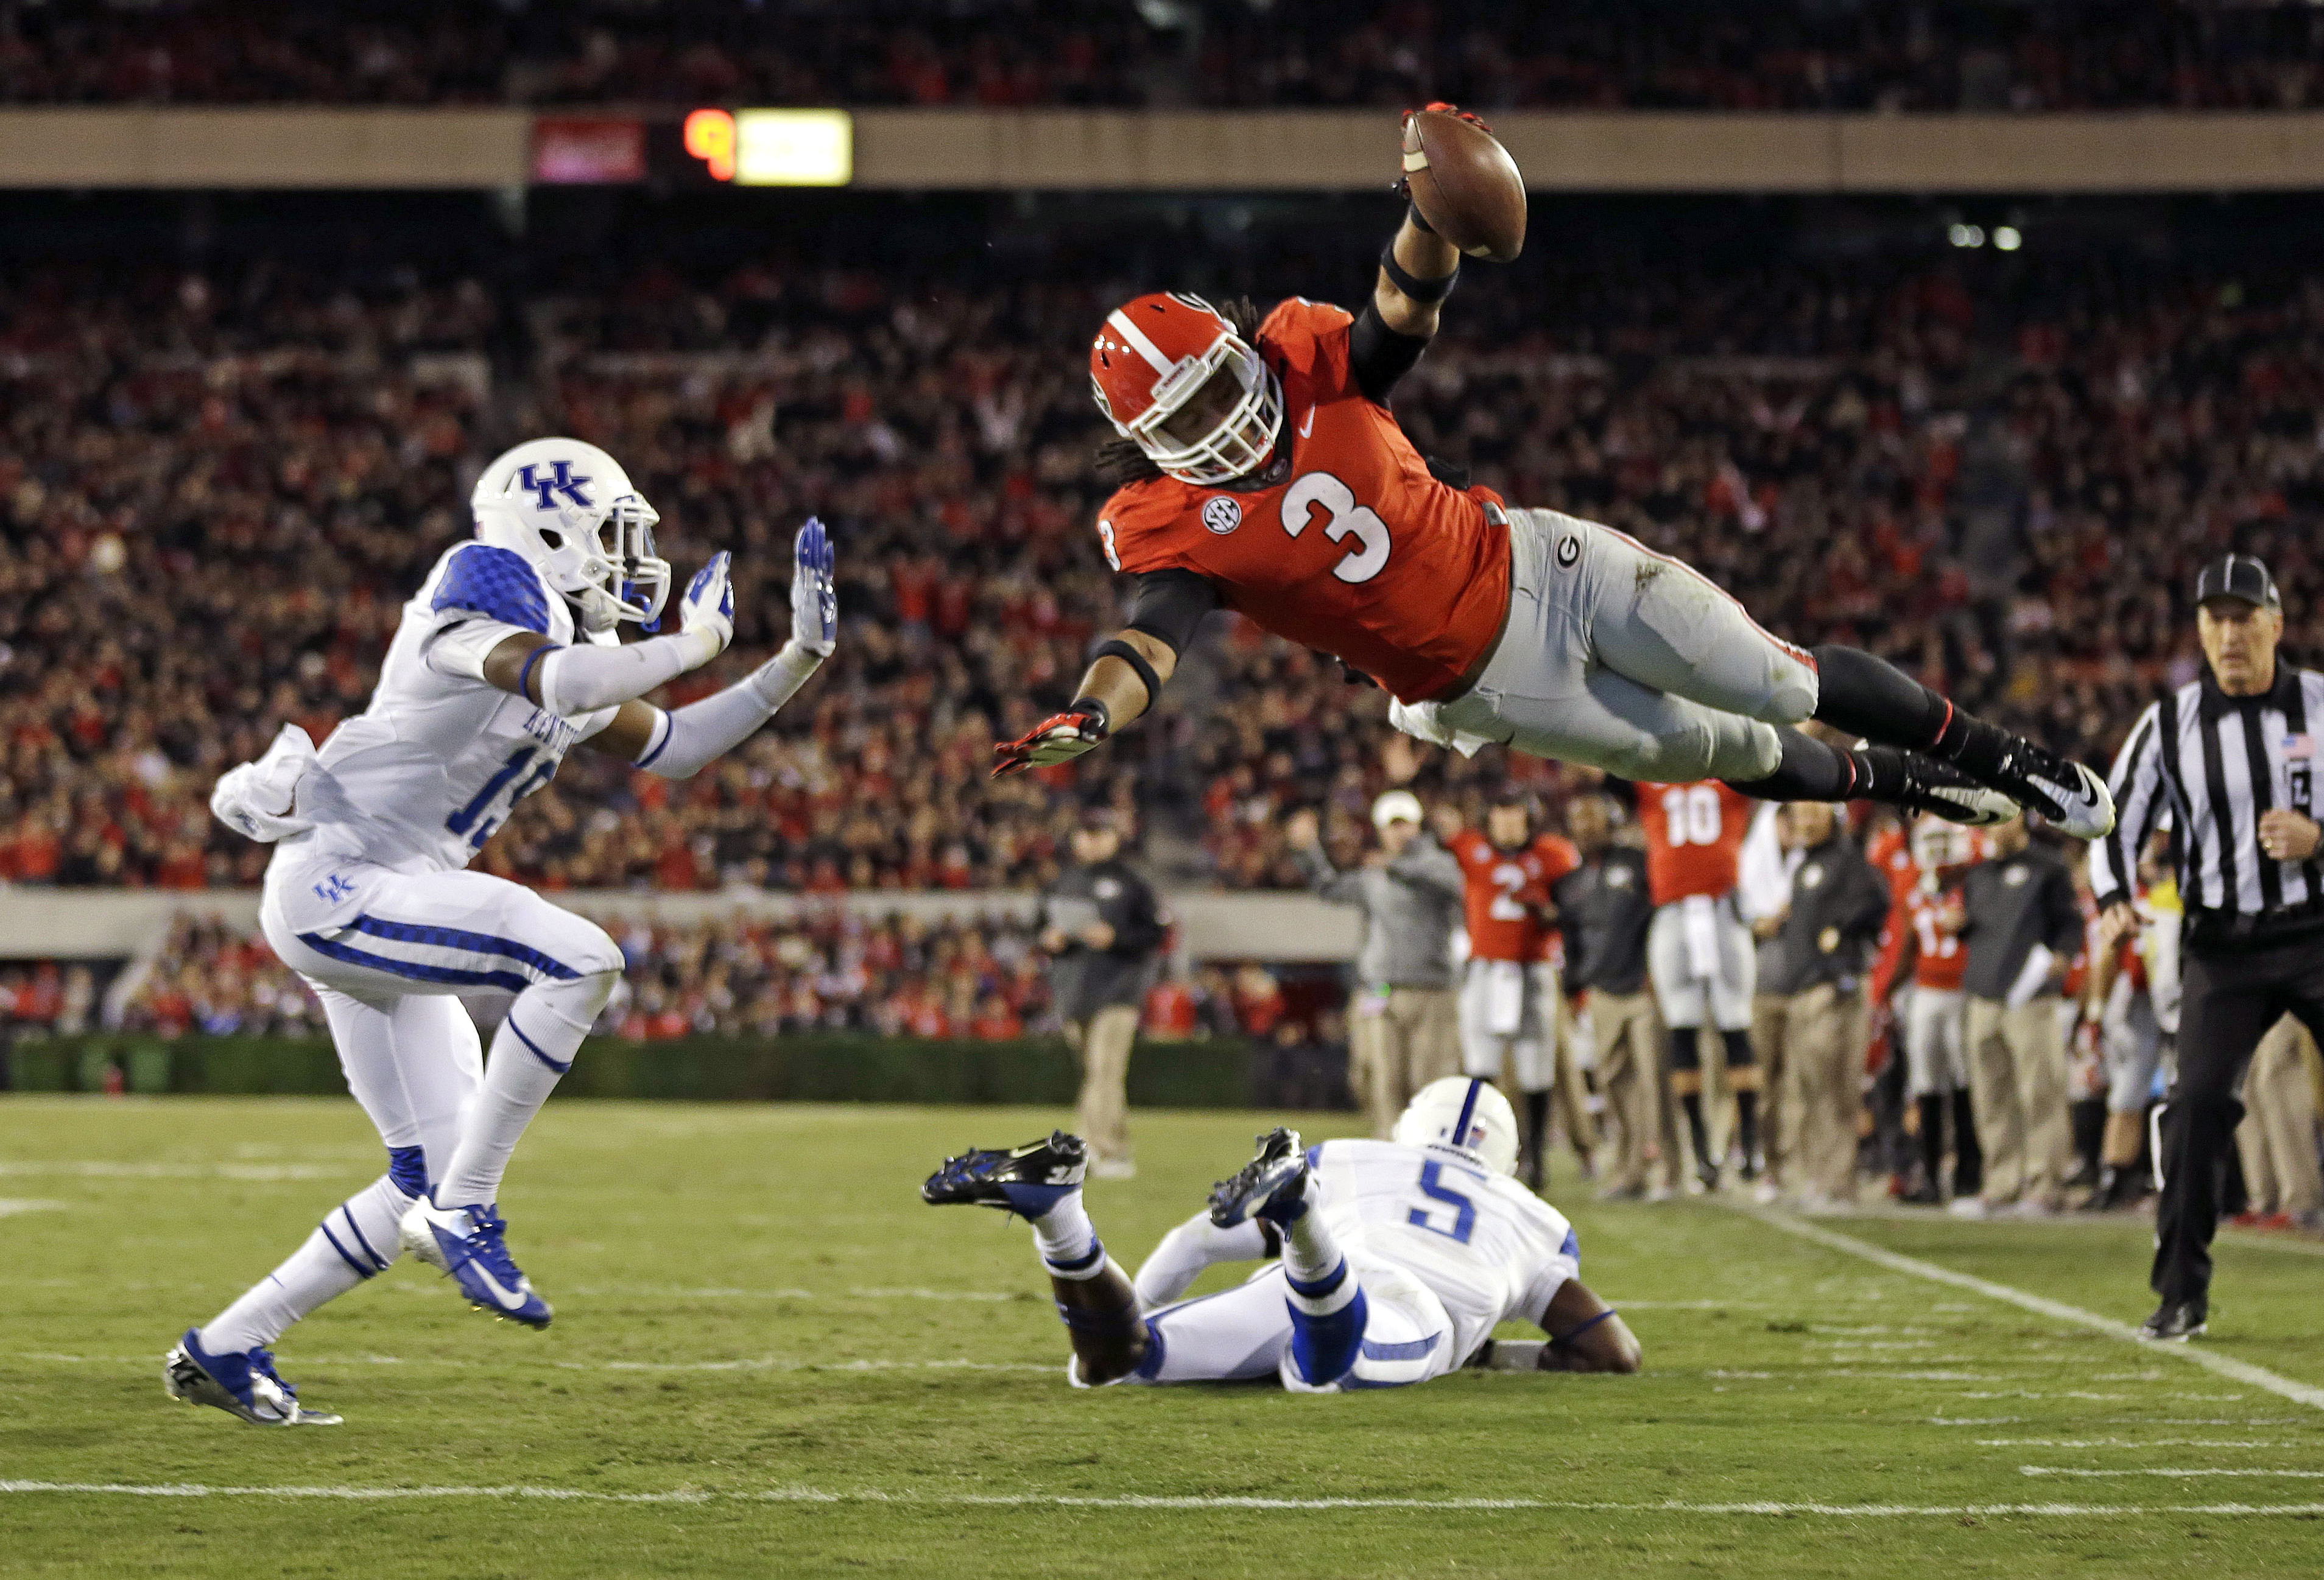 ADVANCE FOR WEEKEND EDITIONS, APRIL 24-25 _ FILE - In this Nov. 23, 2013, file photo, Georgia running back Todd Gurley (3) dives into the end zone for a touchdown as Kentucky cornerback Jaleel Hytchye (19) defends in the first half of an NCAA college foot